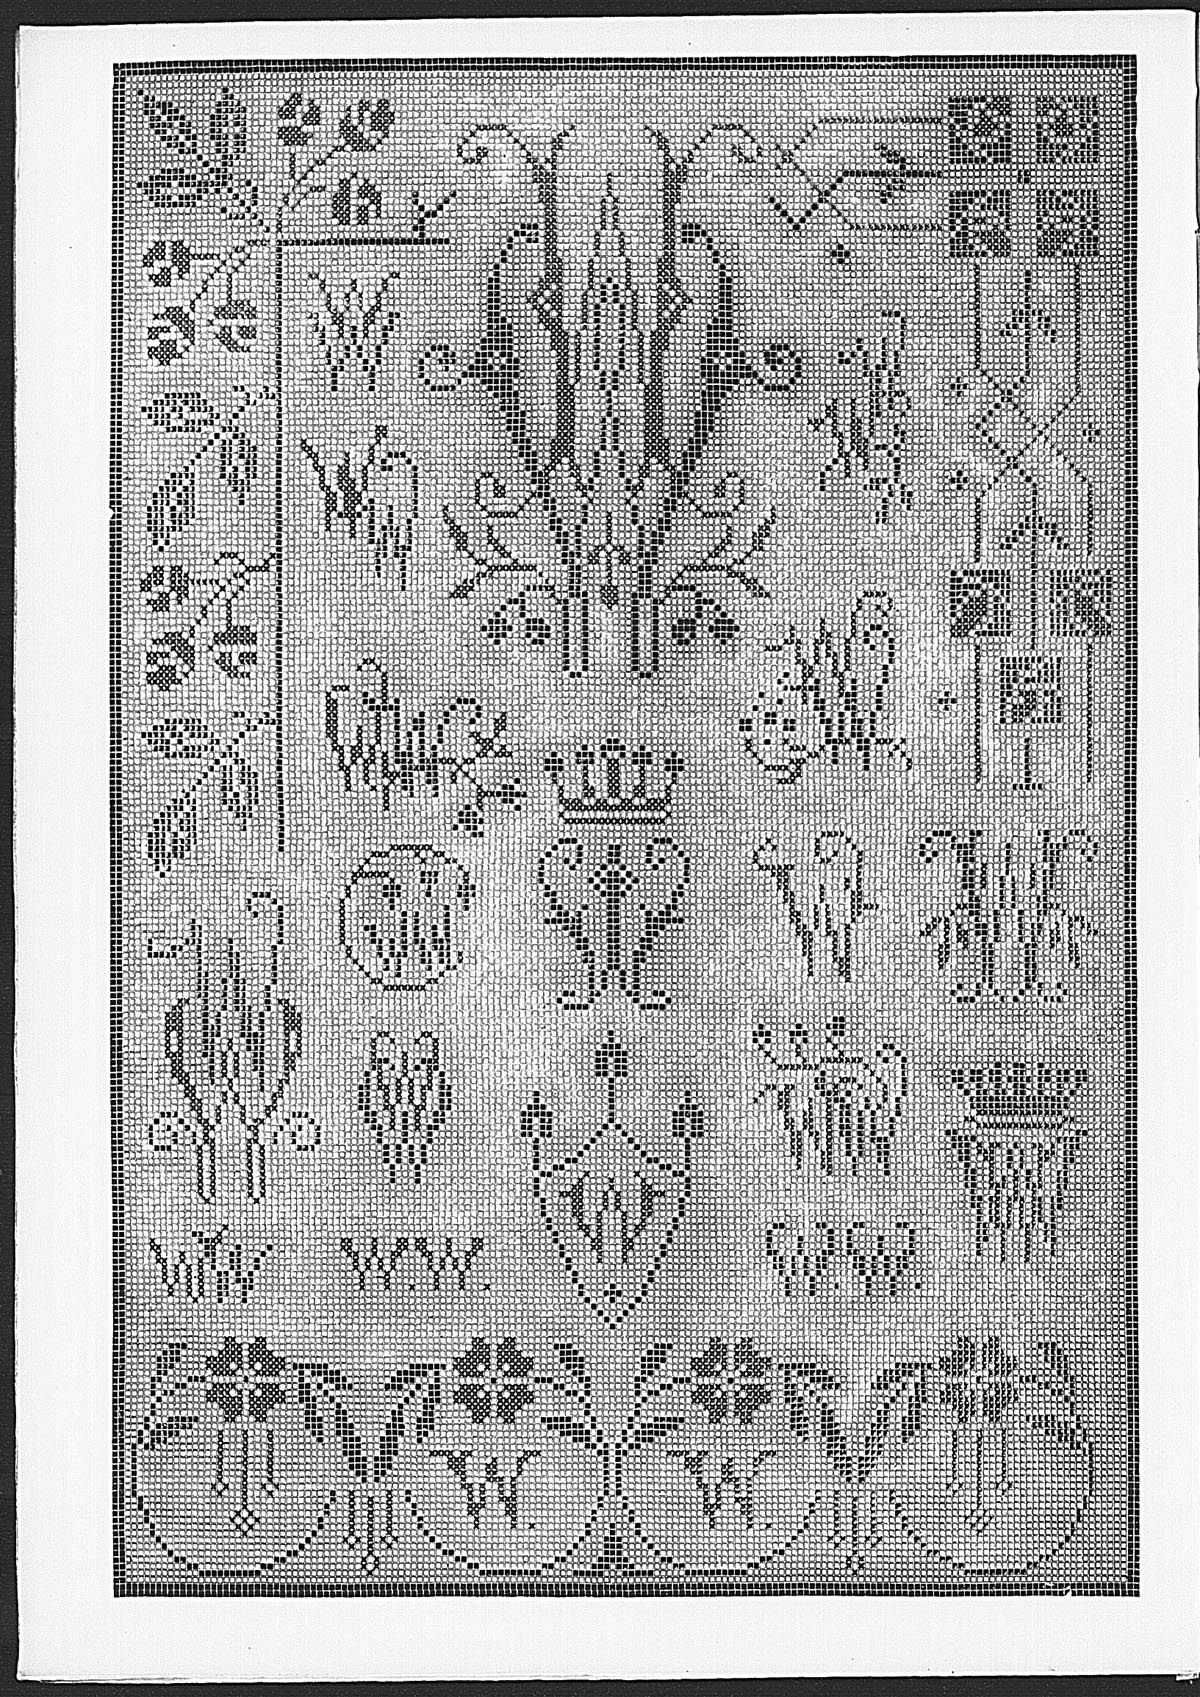 Cross stitch monograms, borders and ornaments, some in Art Nouveau style.   (visit site for bigger picture)  Gracieuse. Geïllustreerde Aglaja, 1912, aflevering 20, pagina 16